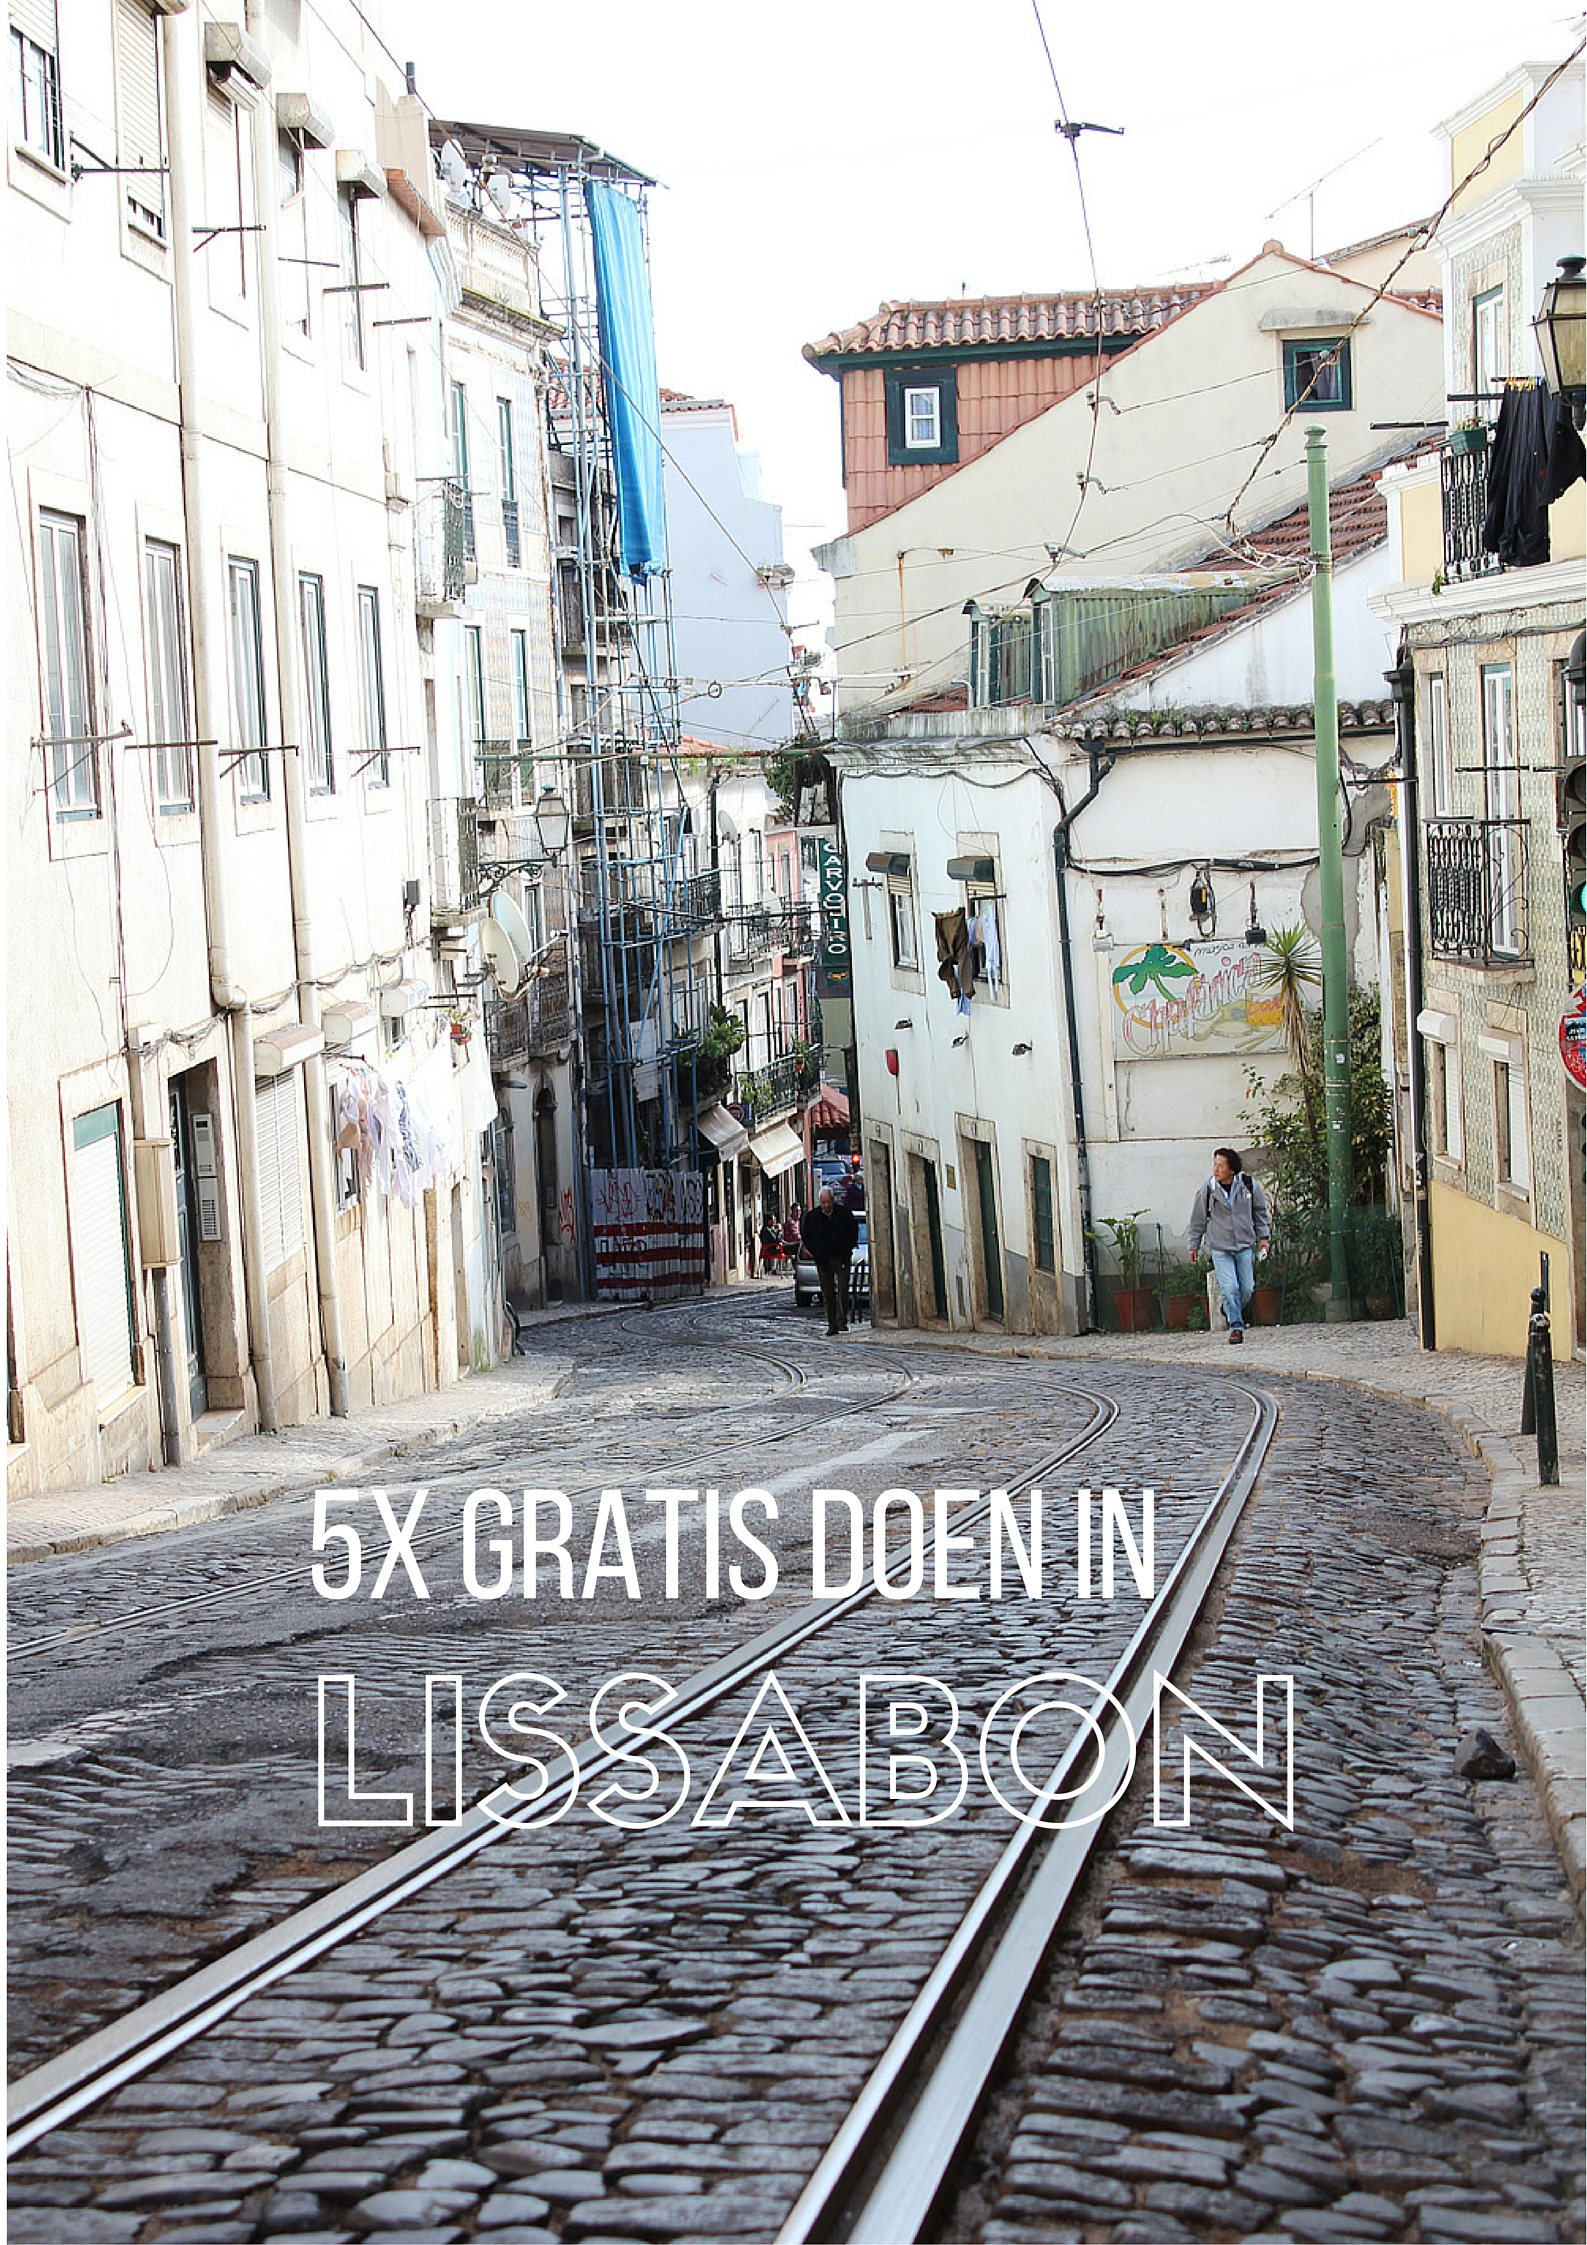 5x gratis doen in Lissabon - Map of Joy